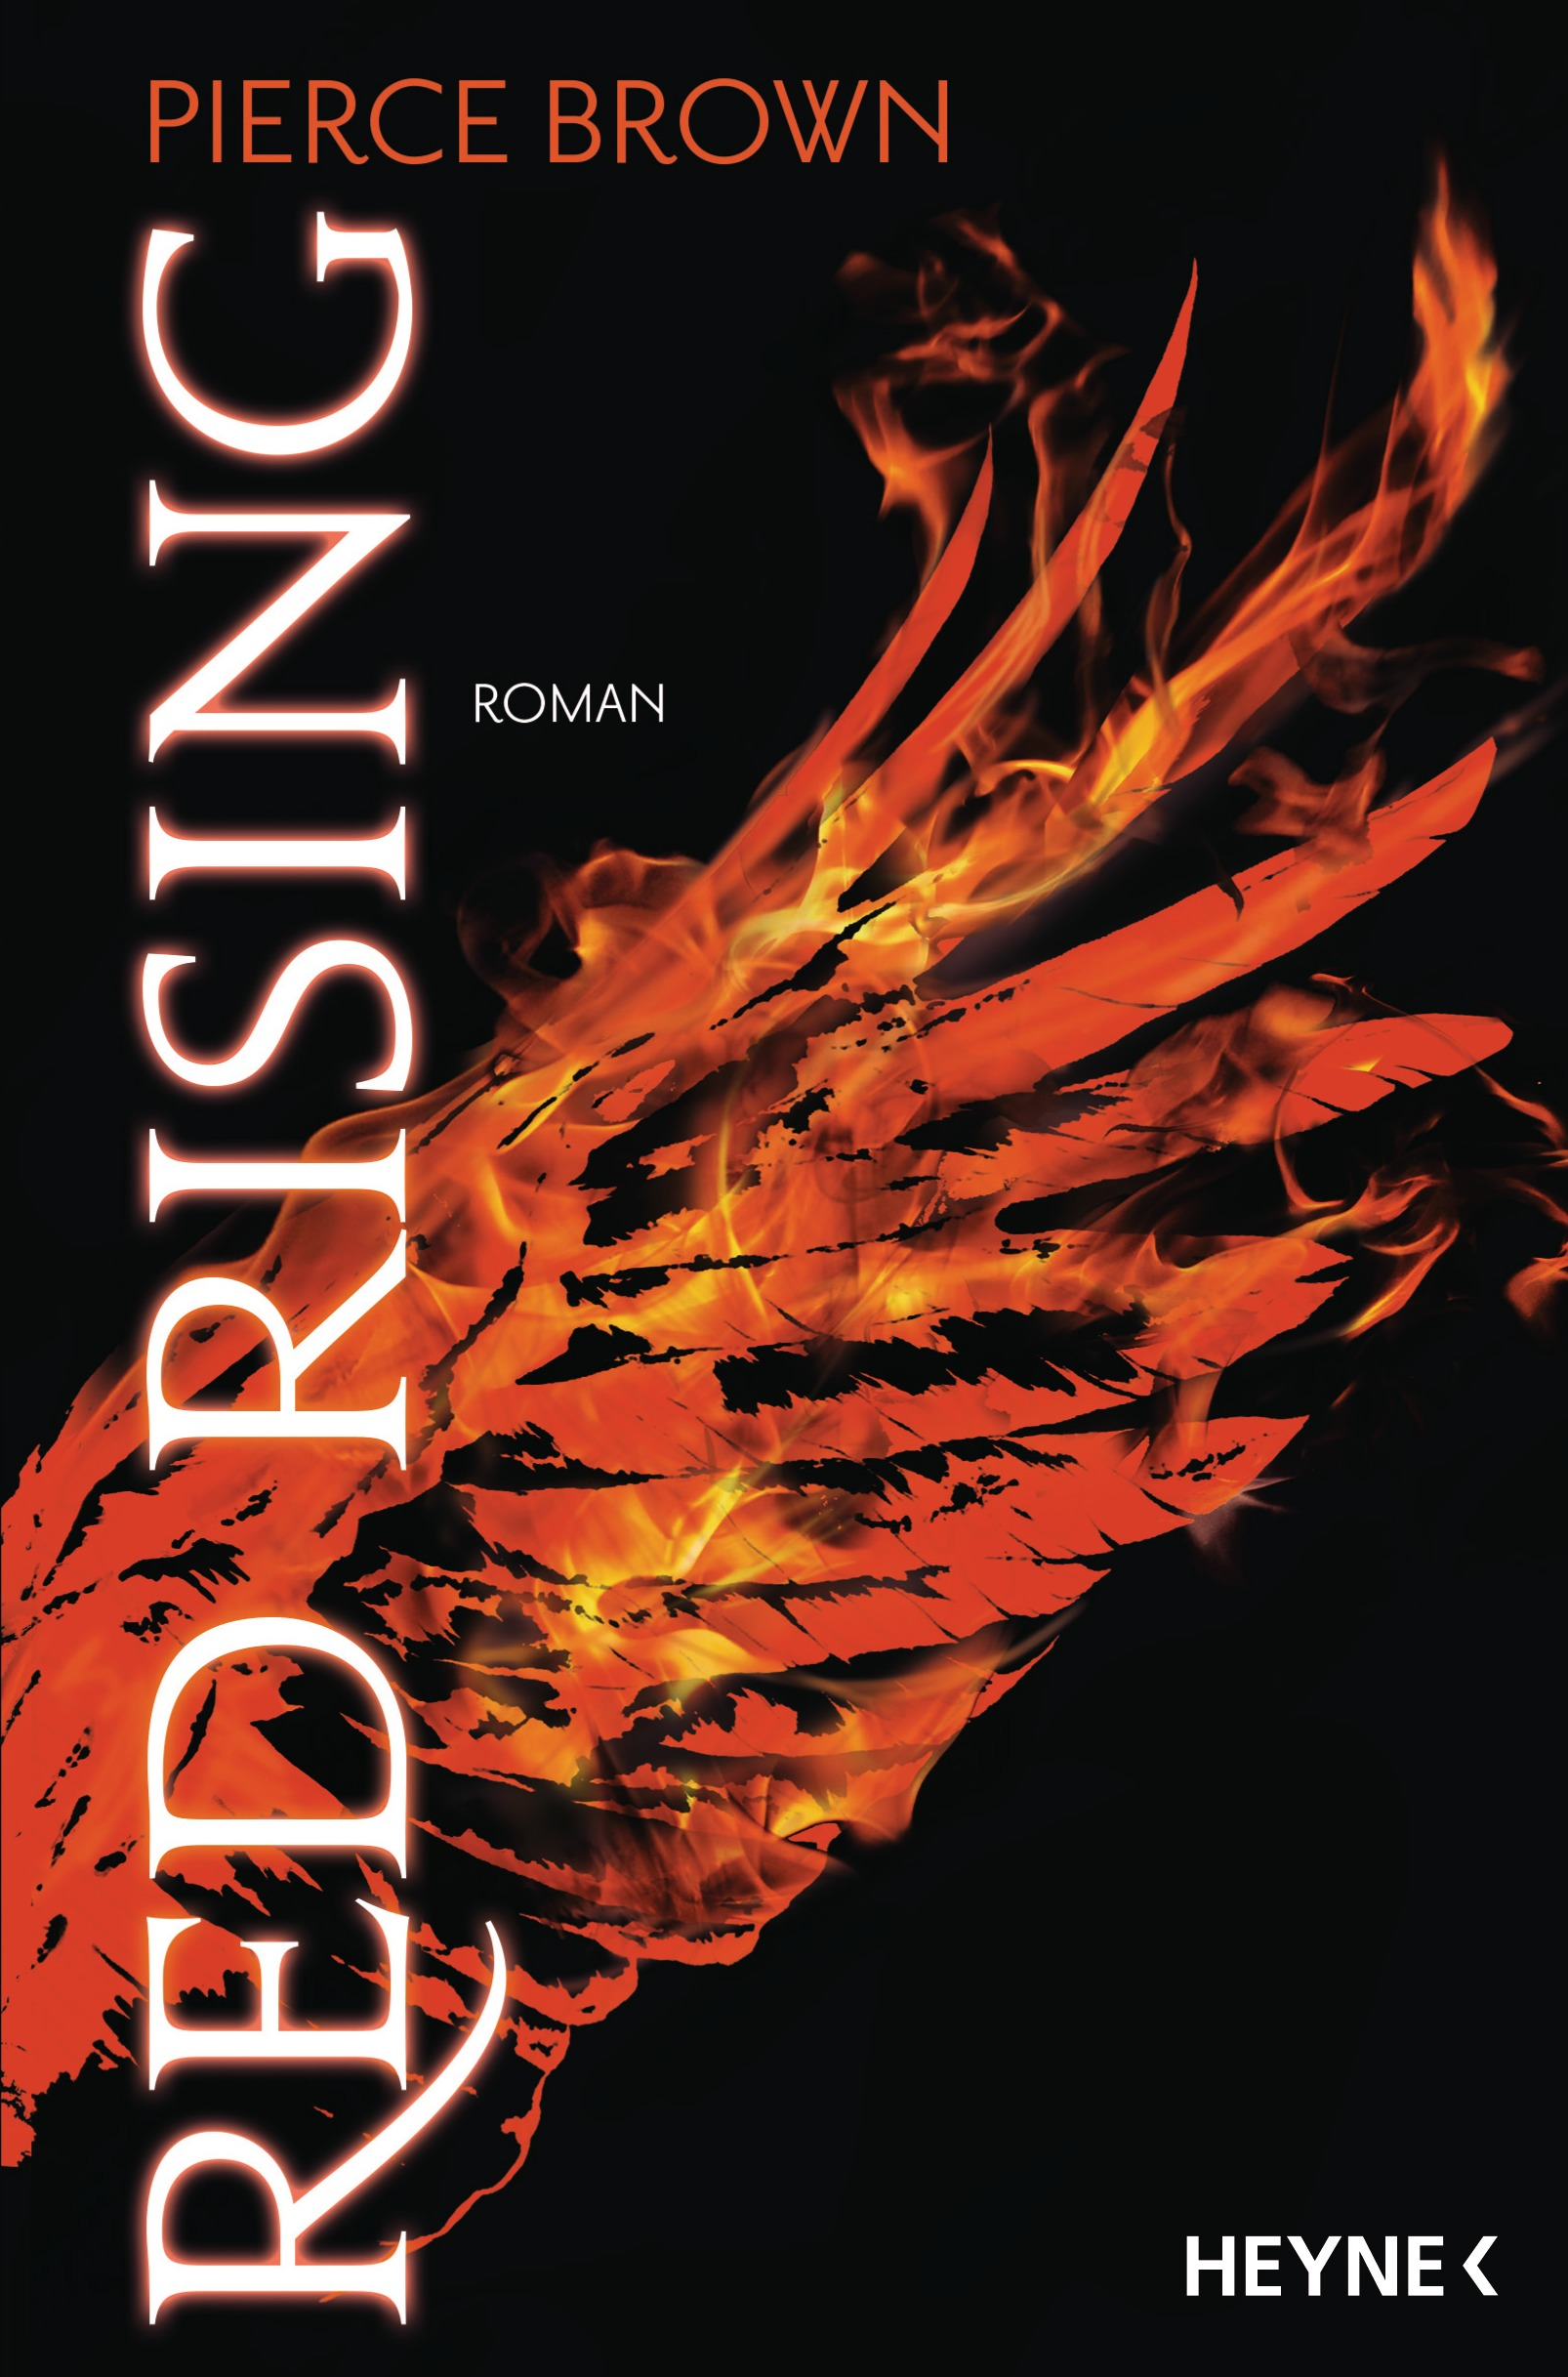 https://www.randomhouse.de/content/edition/covervoila_hires/Brown_PRed_Rising_1_161850.jpg